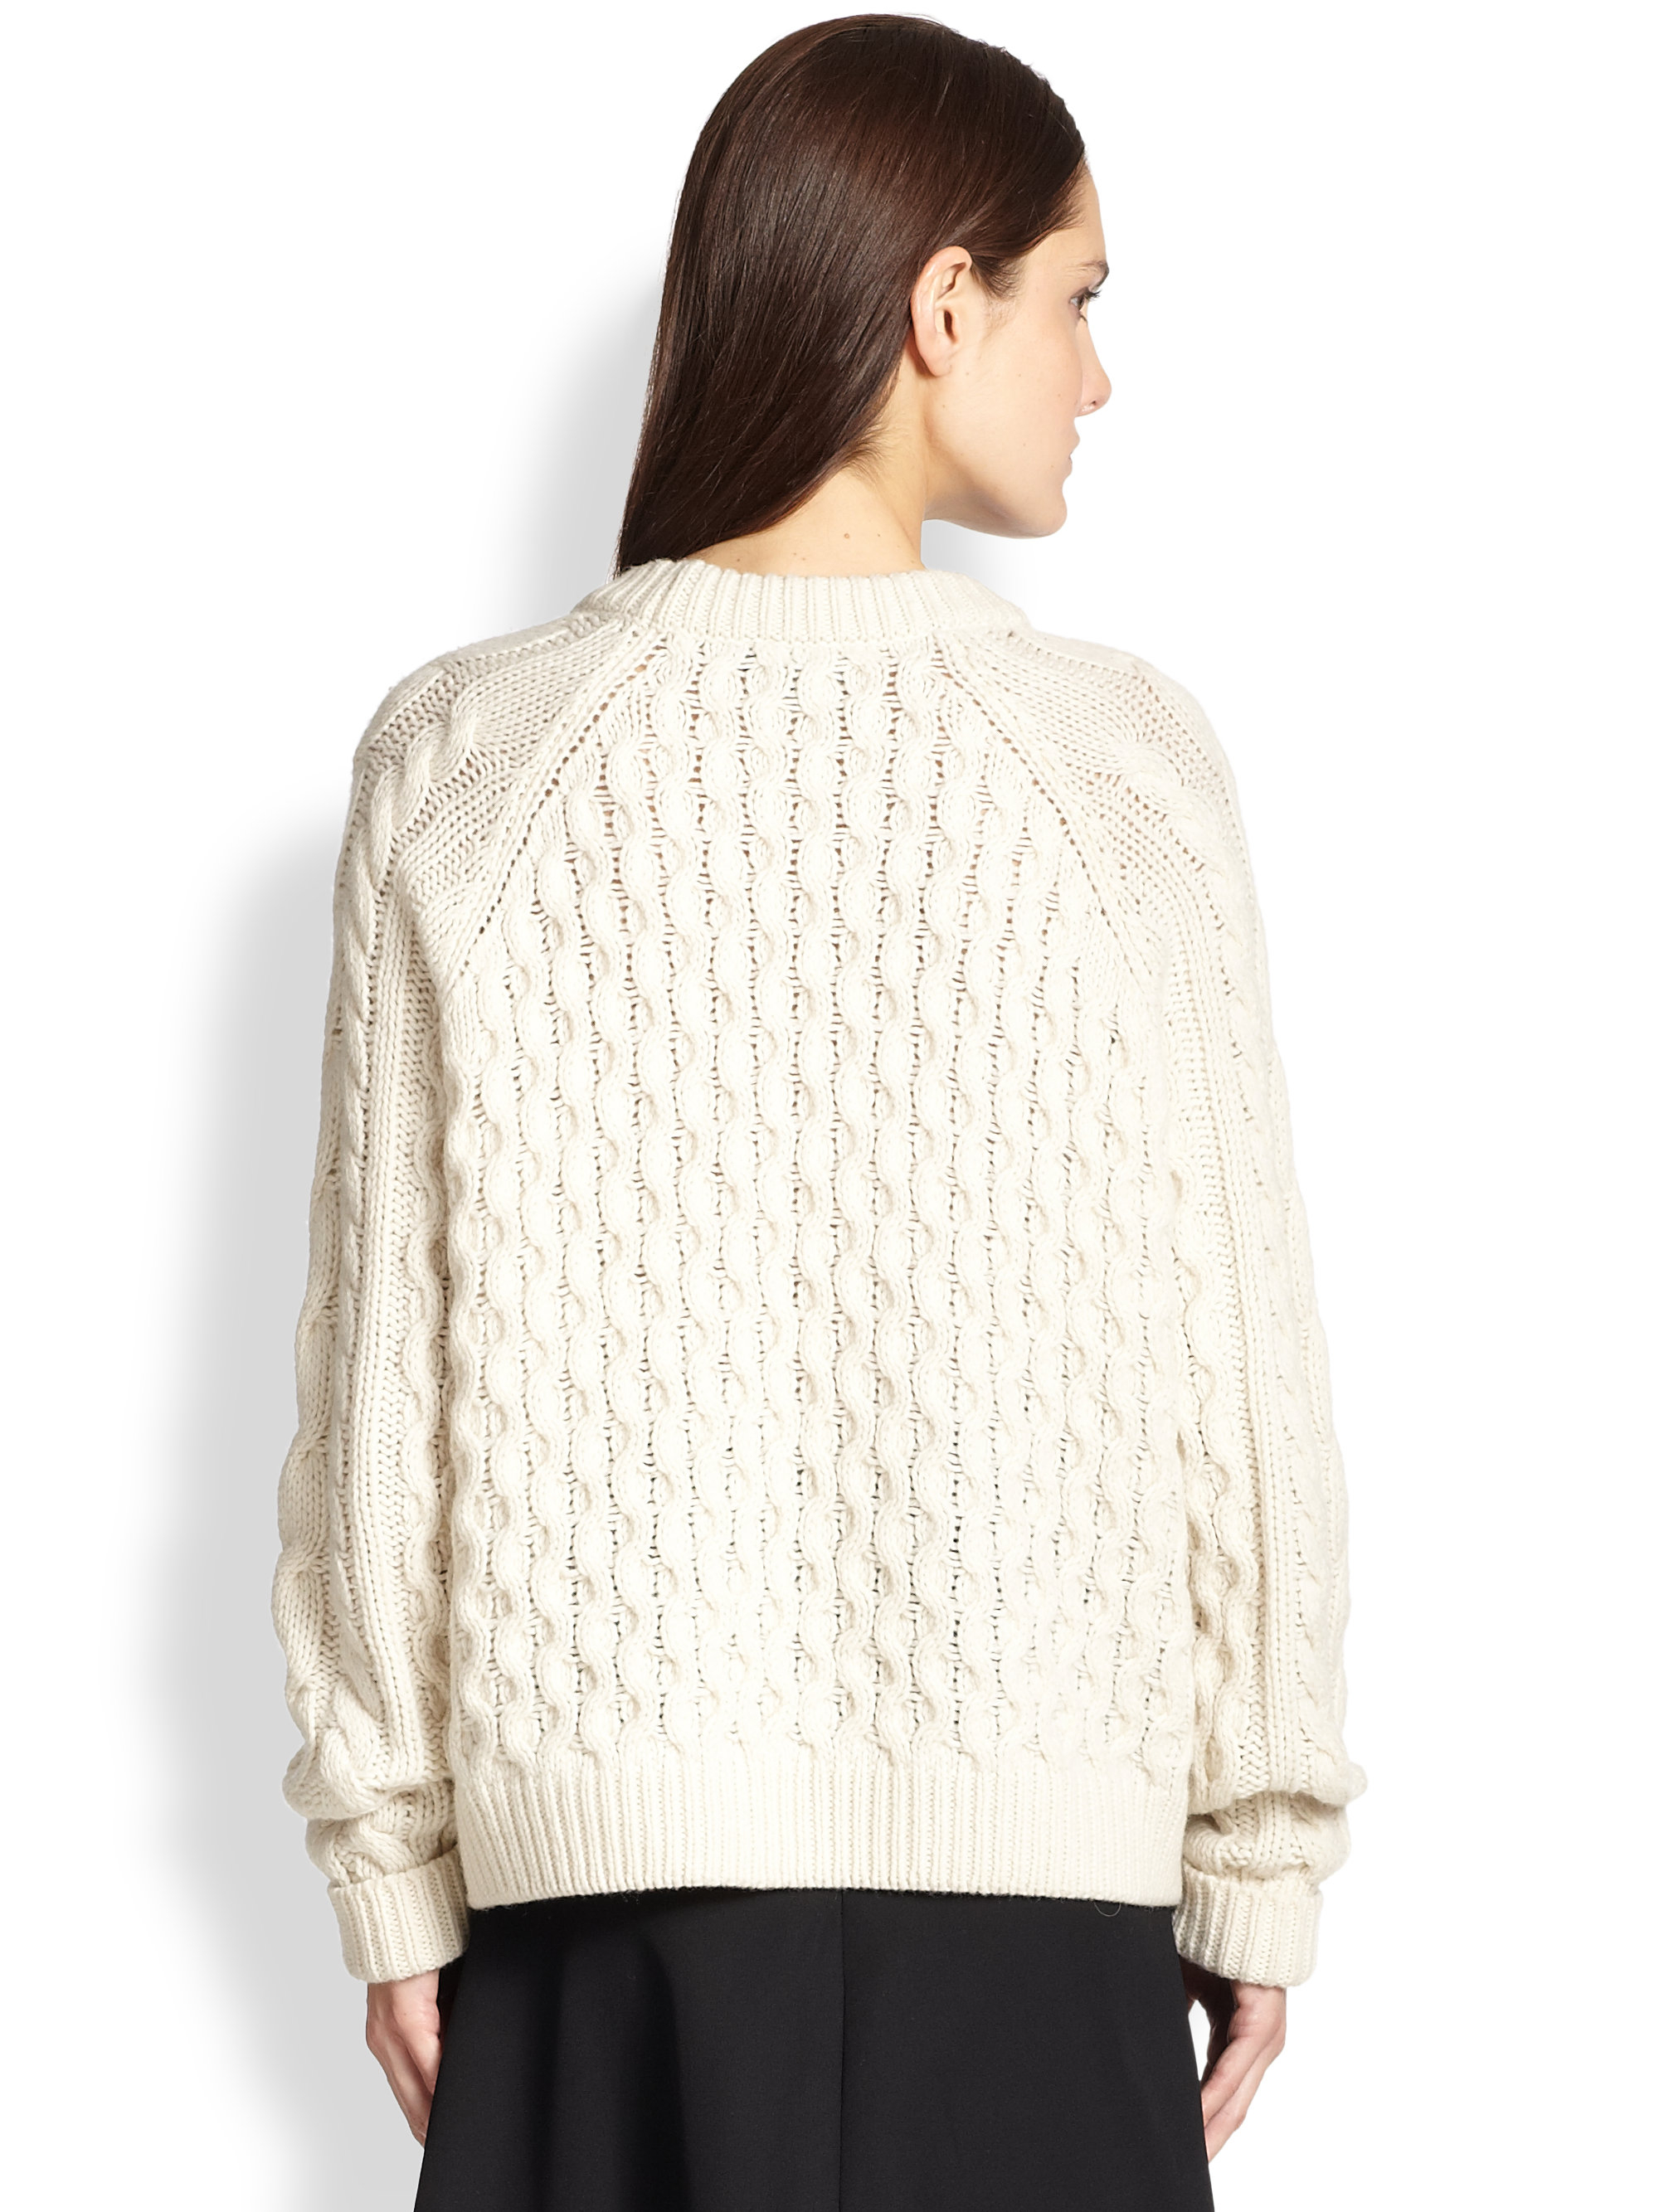 472deea6dc Gallery. Previously sold at  Saks Fifth Avenue · Women s Cable Knit Sweaters